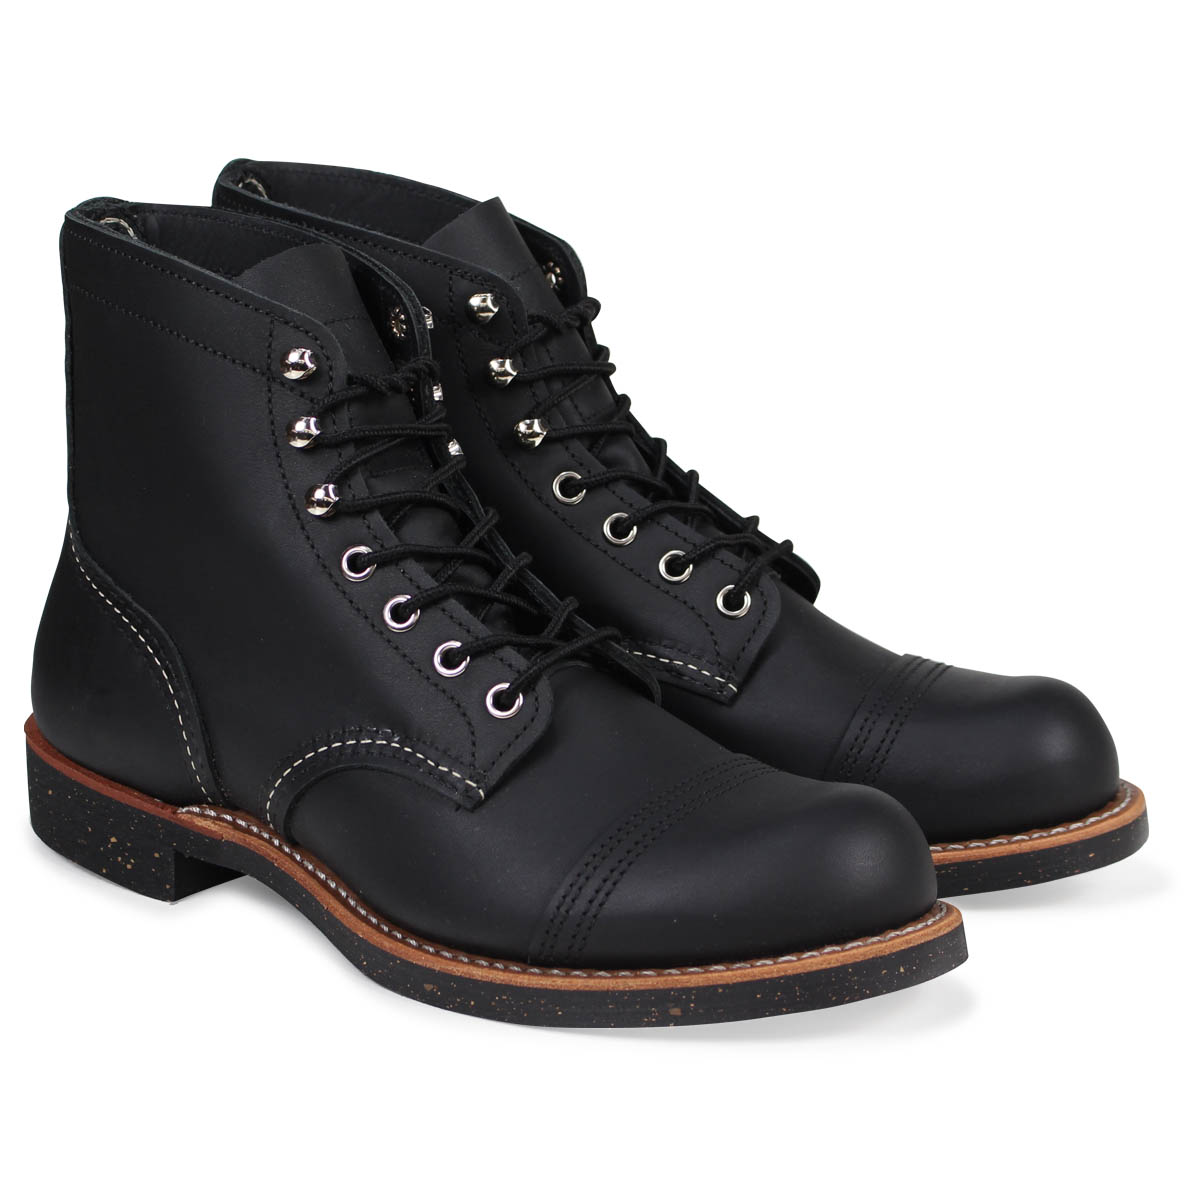 01bbb5ff5bf RED WING 6INCH IRON RANGER red wing boots iron range 6 inches iron Ranger D  Wise 8114 redwing work boots men